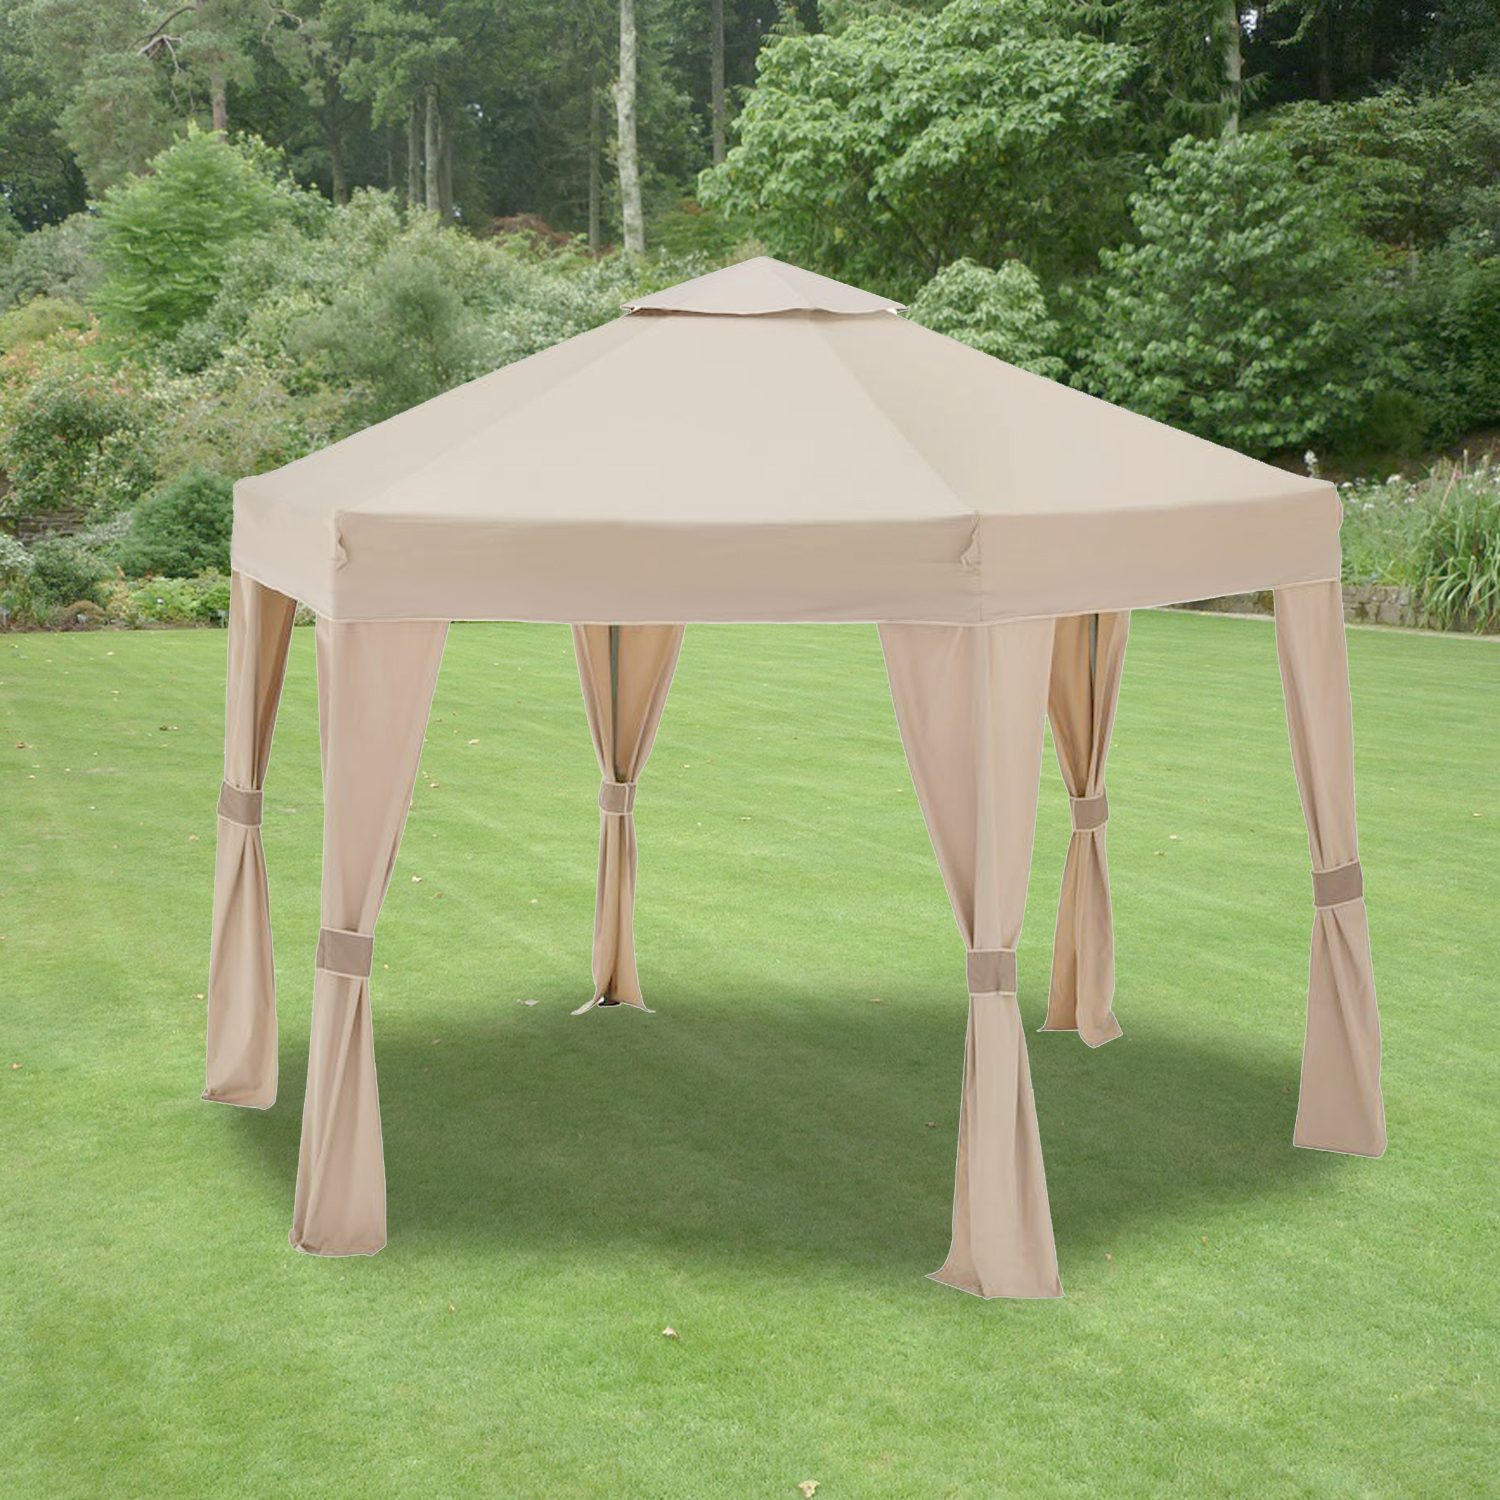 Garden Winds Replacement Canopy for the Tacoma Hexagon Gazebo, Riplock 350